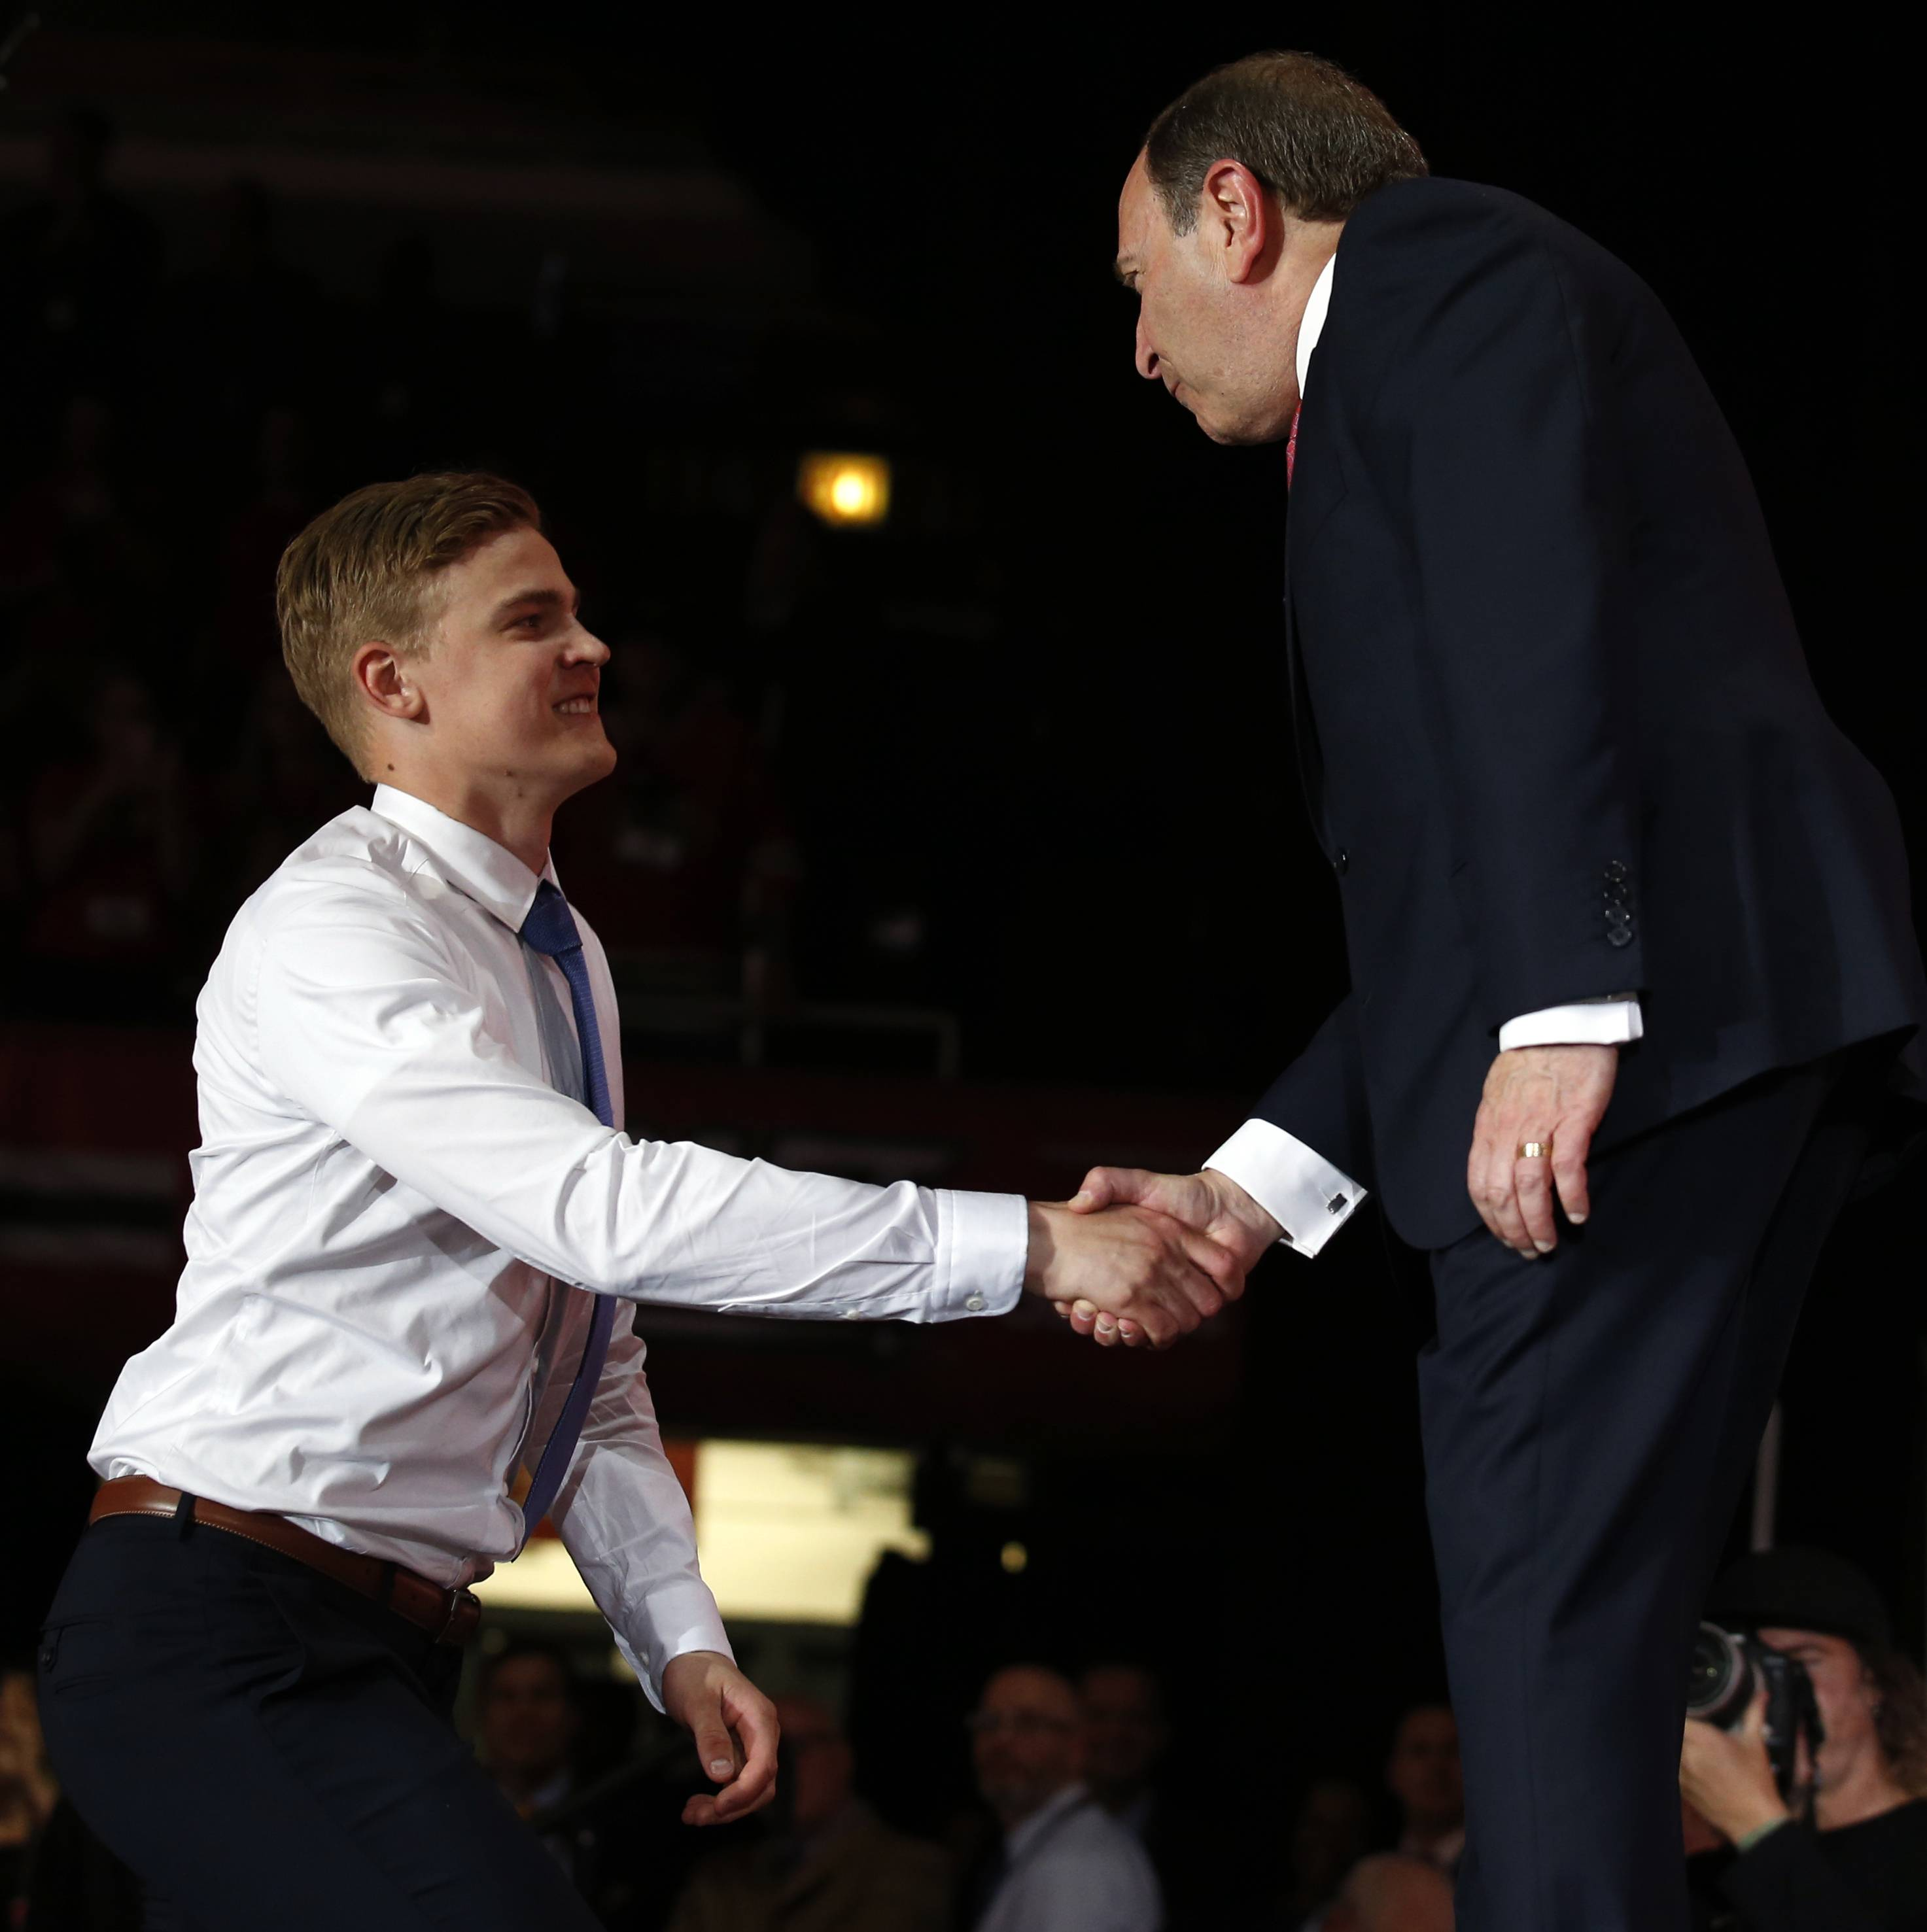 Henri Jokiharju, left, greets NHL Commissioner Gary Bettman after being selected by the Chicago Blackhawks in the first round of the NHL hockey draft, Friday, June 23, 2017, in Chicago. (AP Photo/Nam Y. Huh)